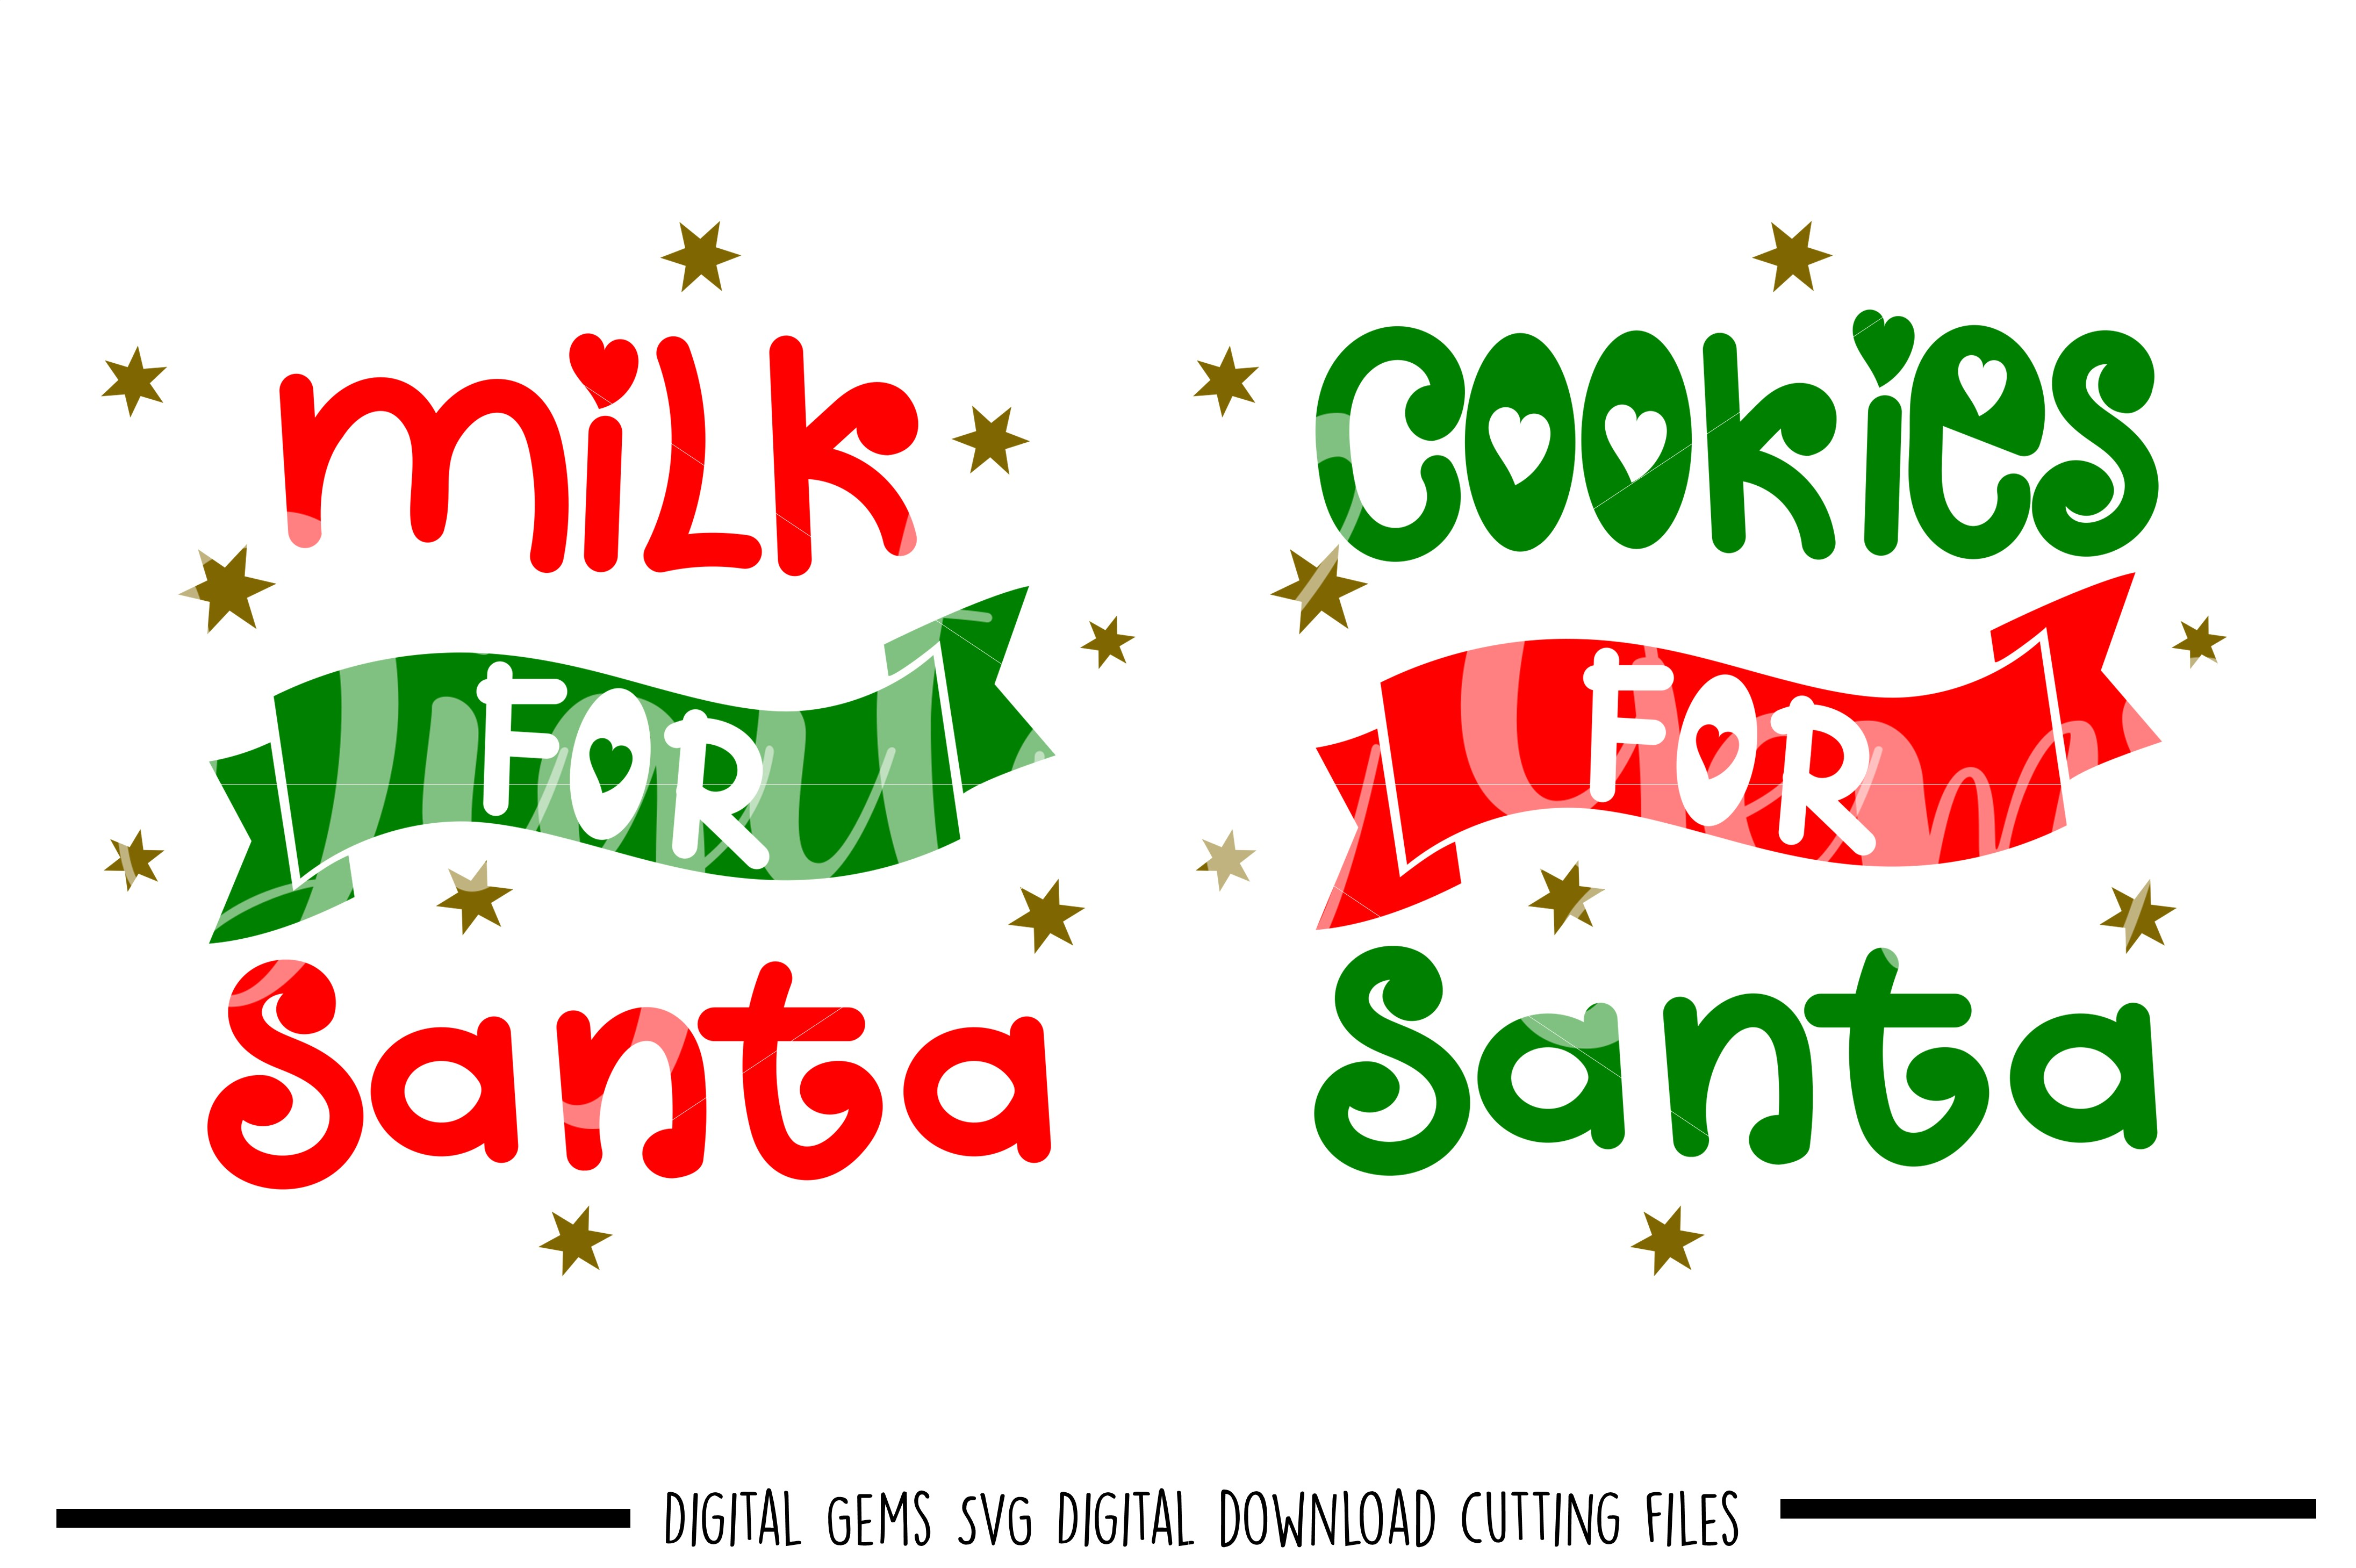 Cookies And Milk For Santa Svg Dxf Eps Png Files 43991 Svgs Design Bundles